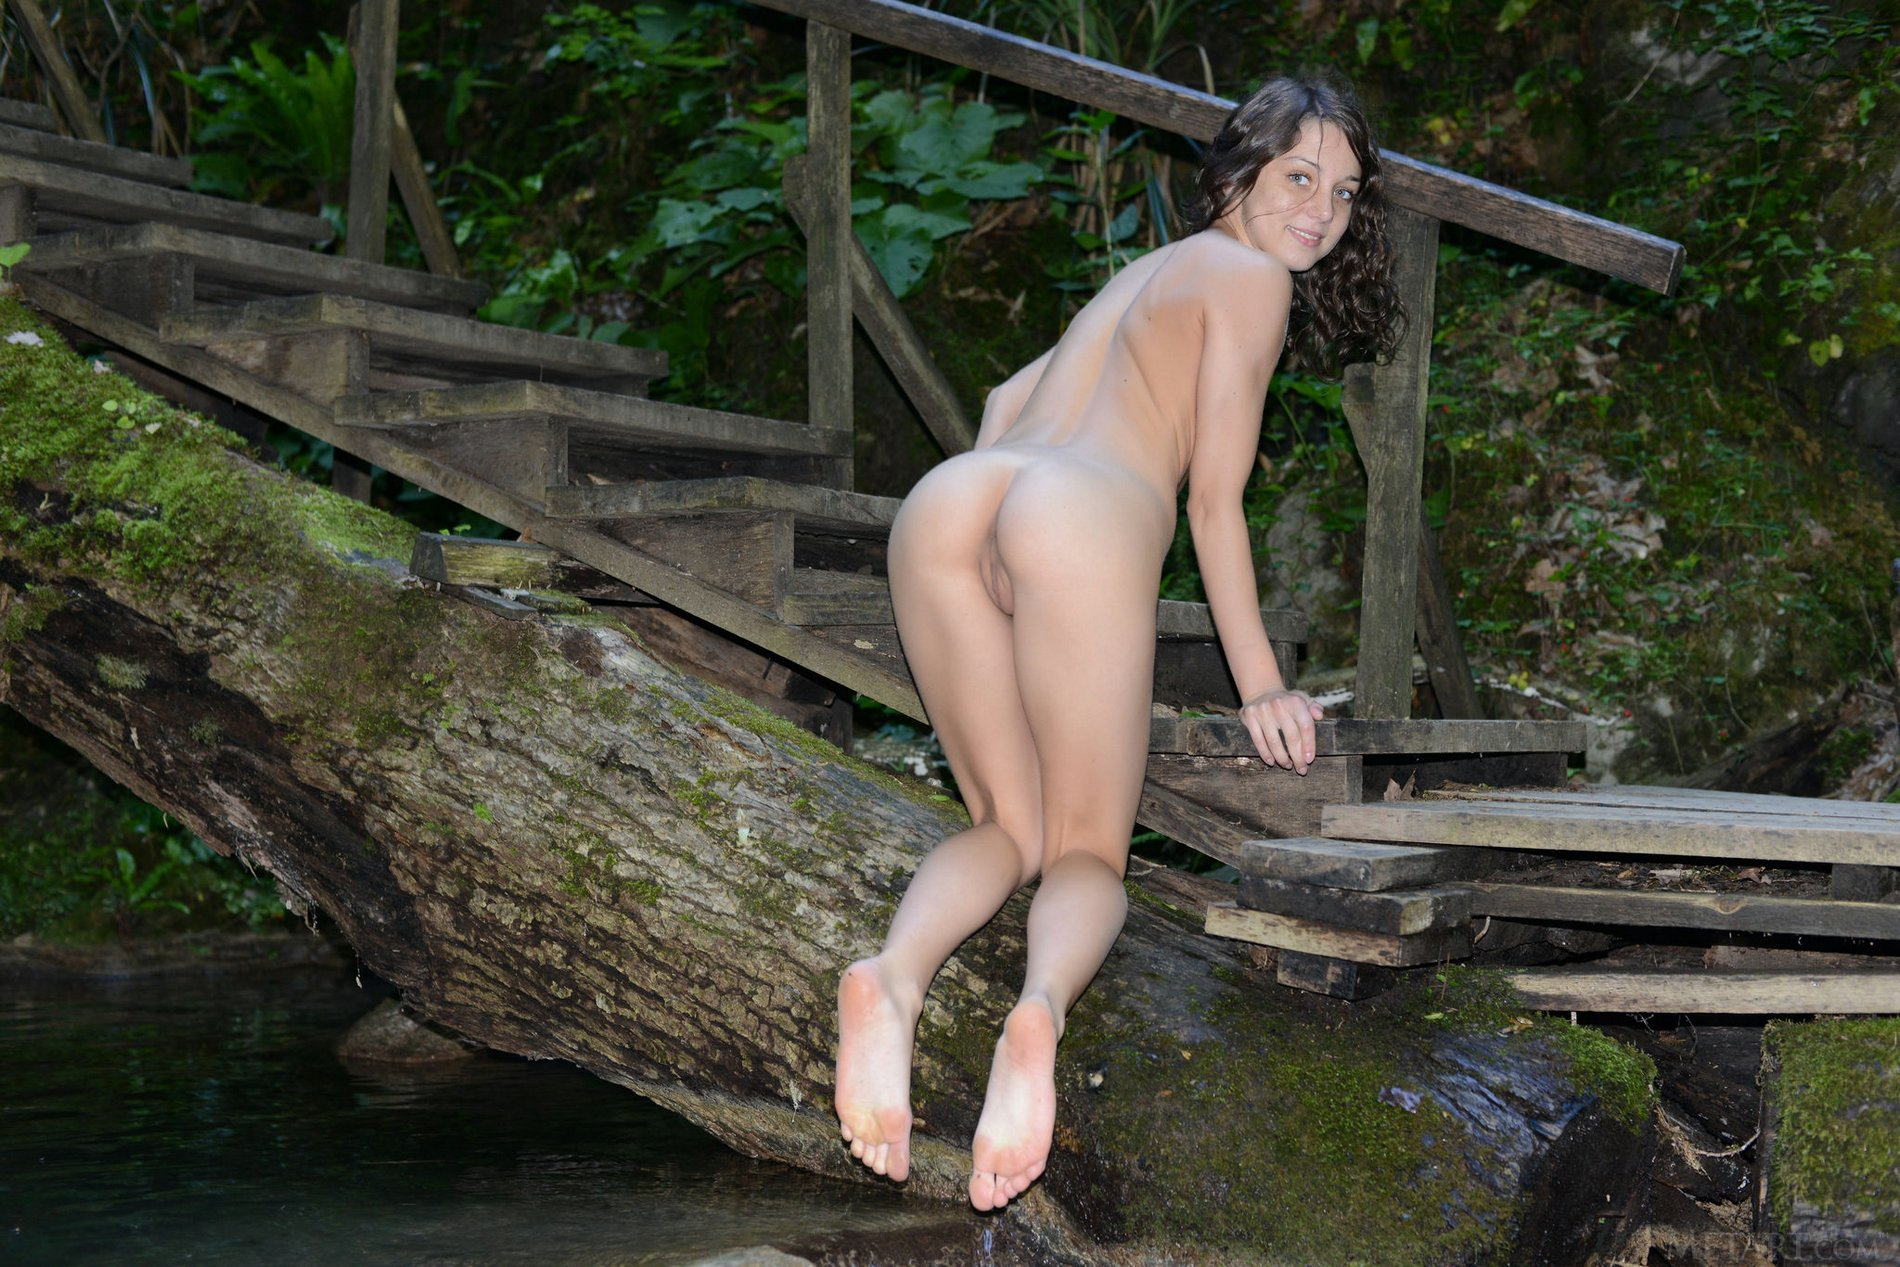 Foxy Di shows off her hot naked body outdoor - My Pornstar ...